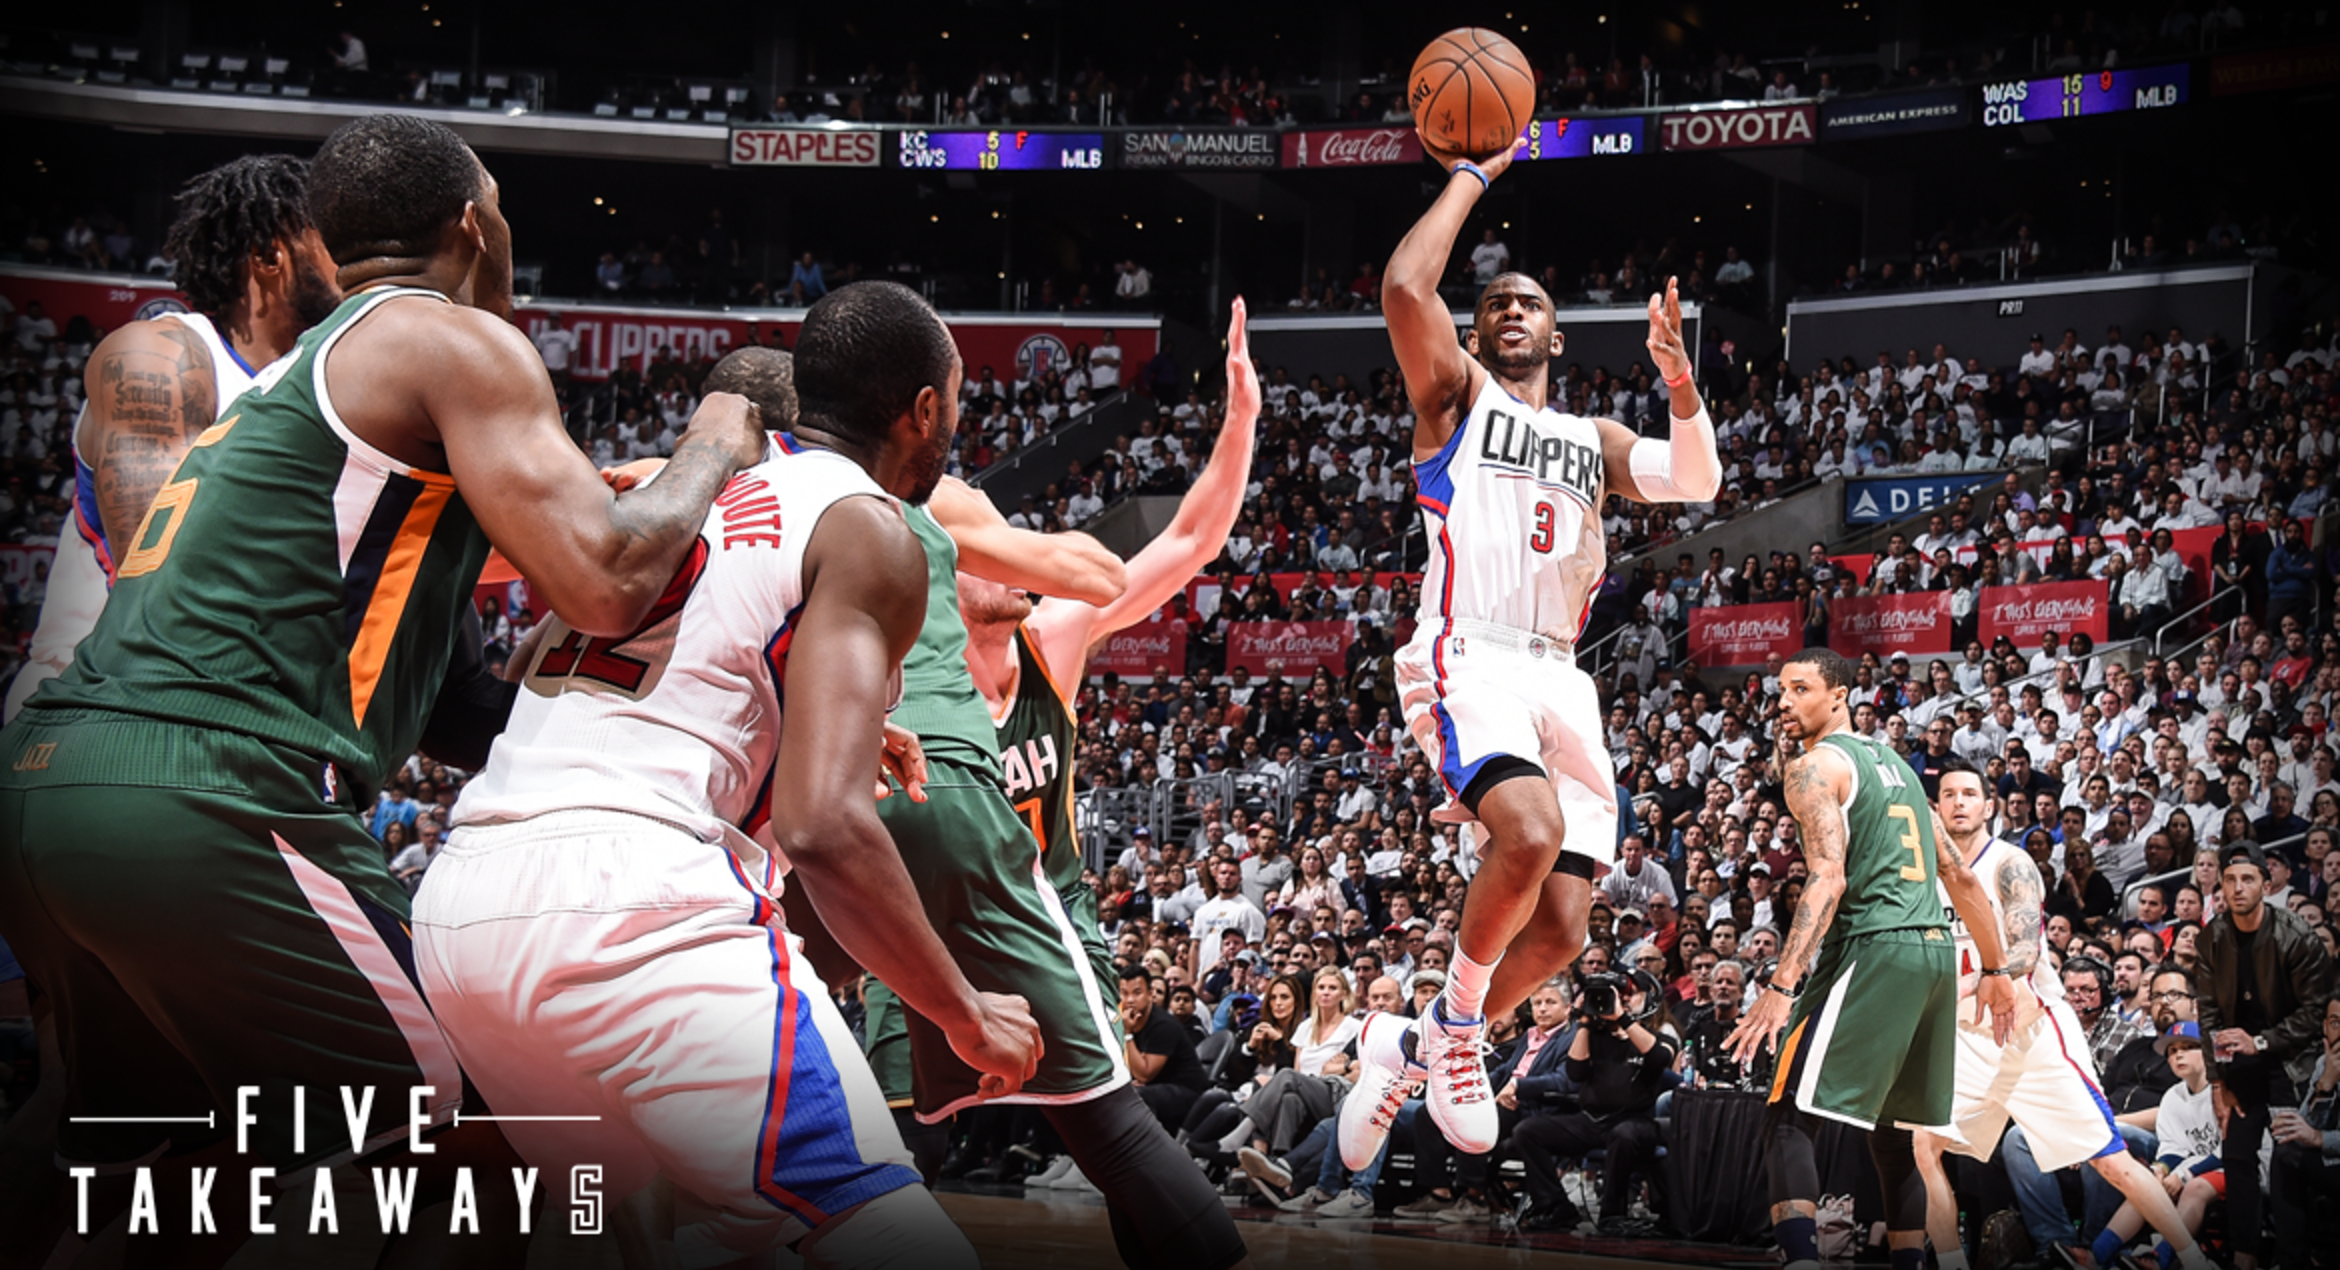 Five Takeaways: Clippers Fall Short in Narrow 96-92 Loss to the Jazz in Game 5